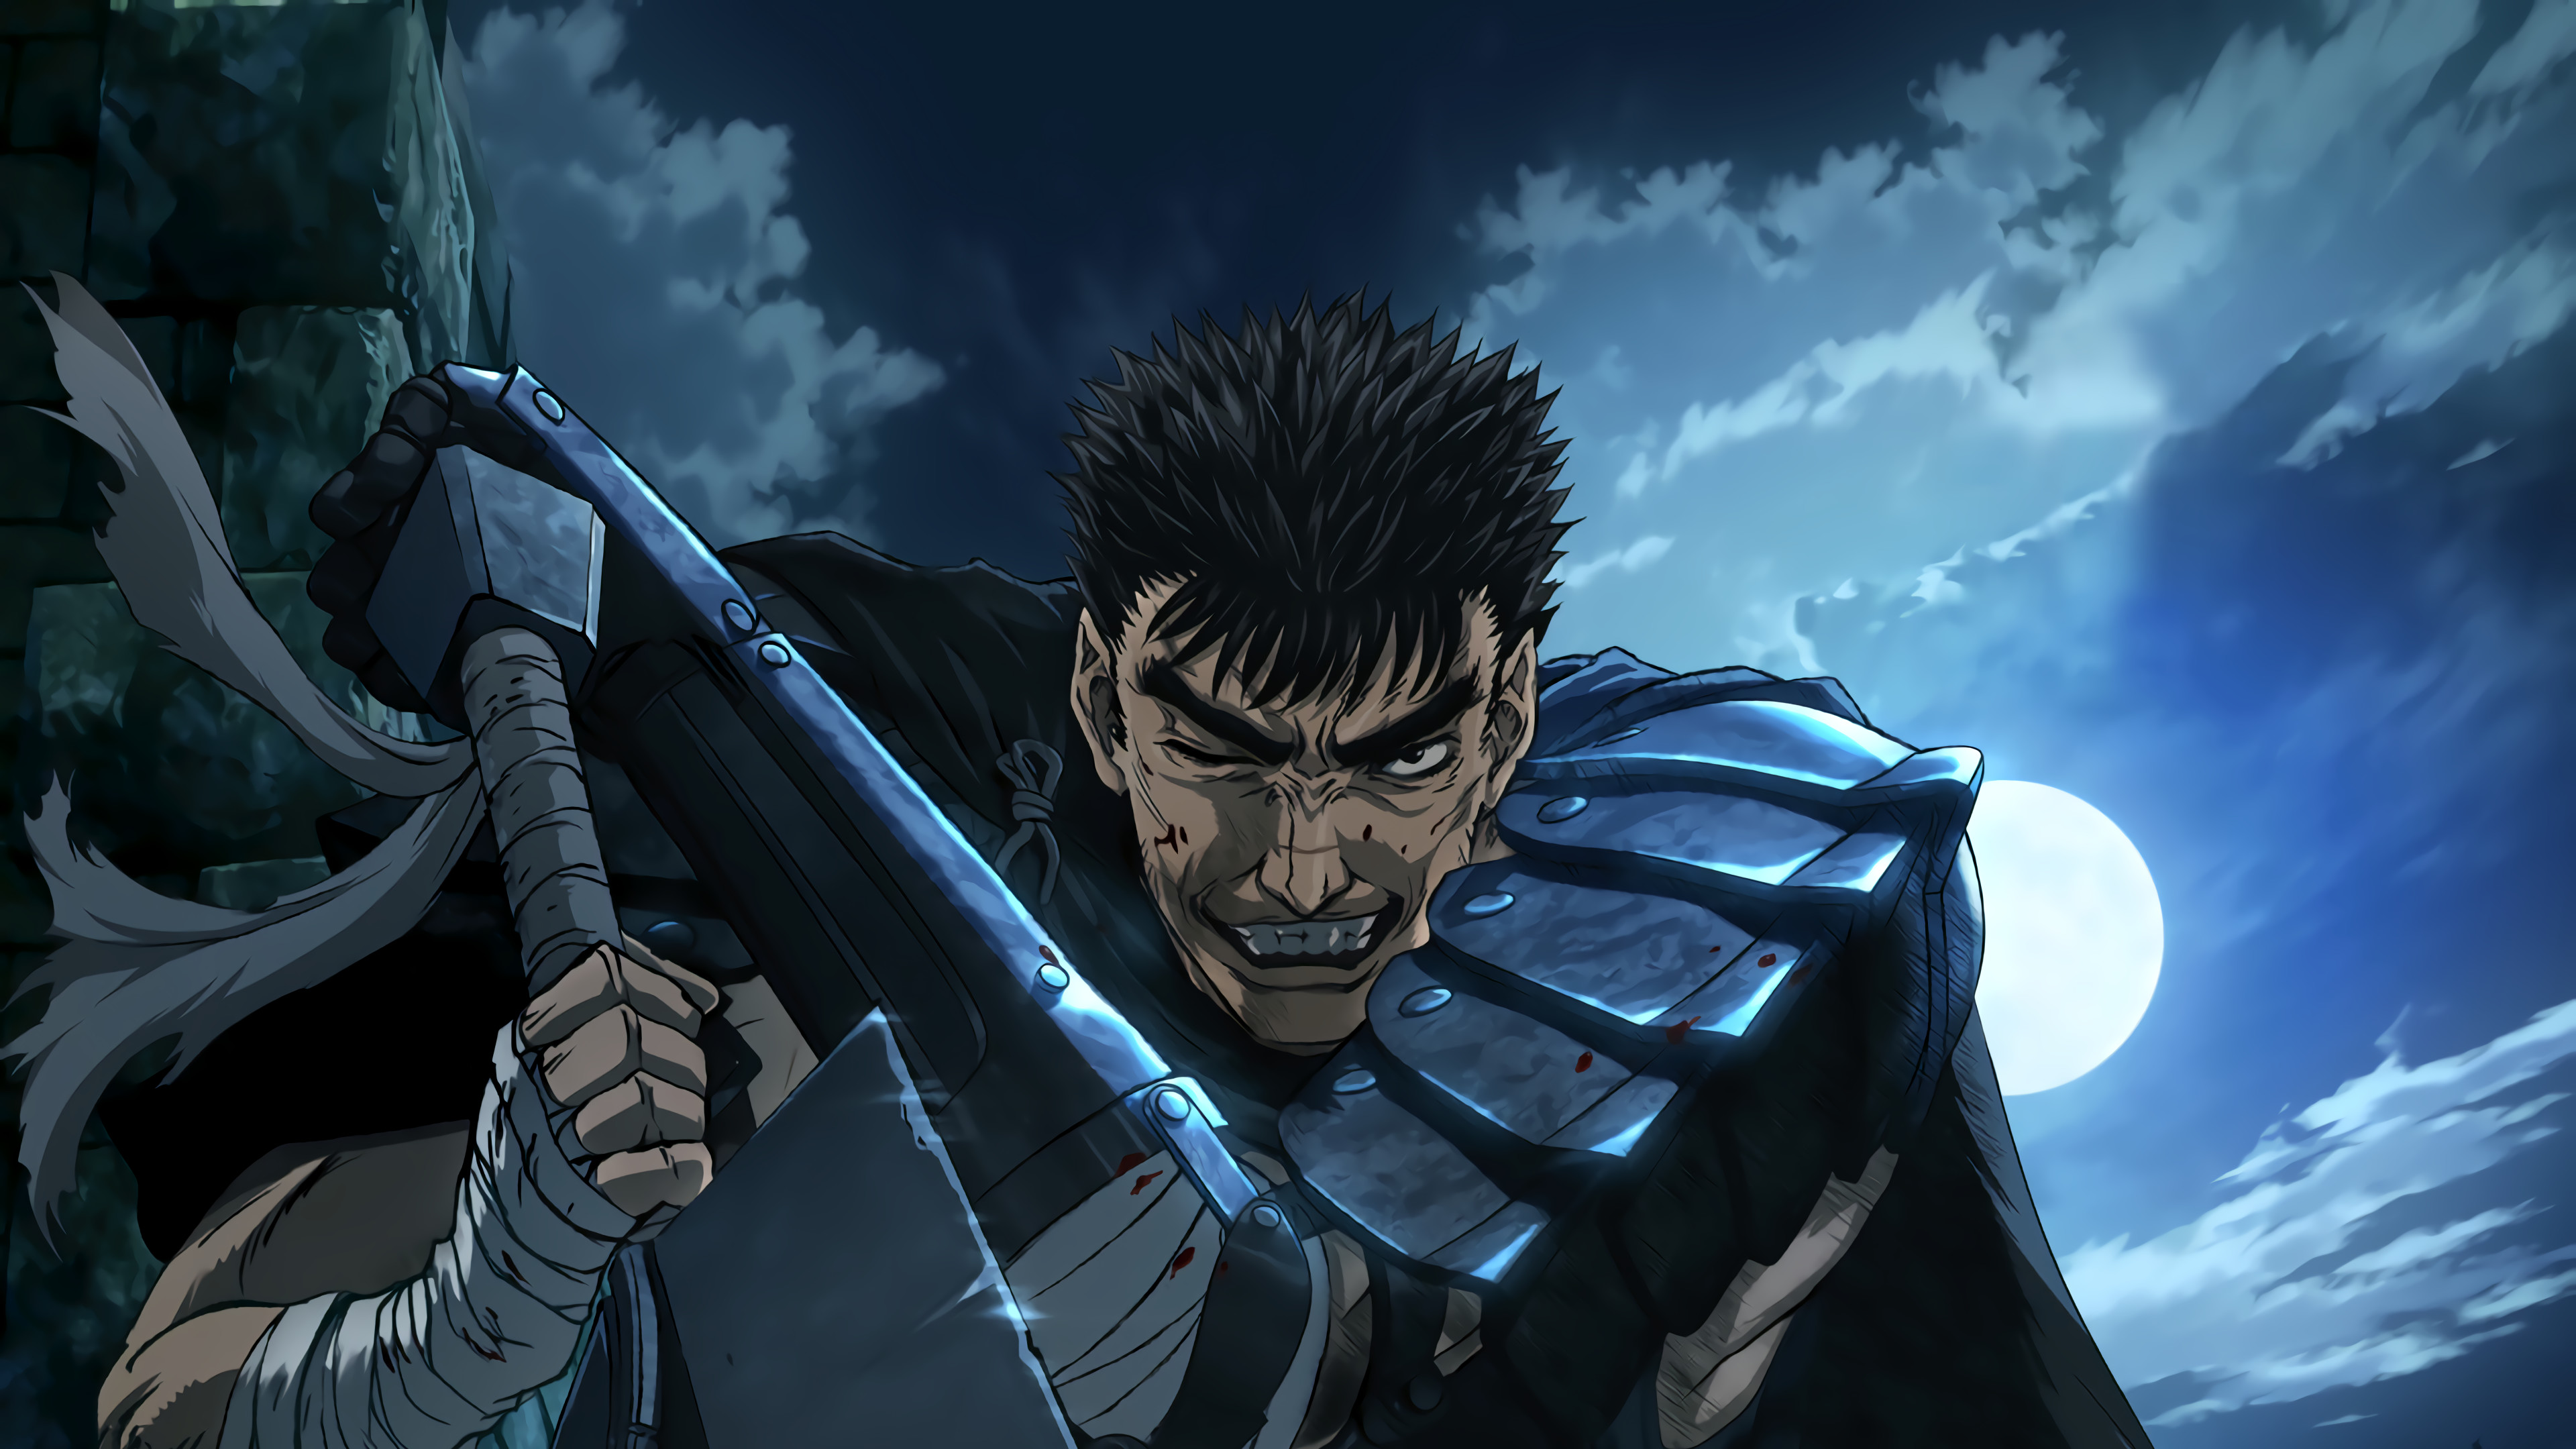 3840x2160 Guts Berserk Wallpaper High Definition ...